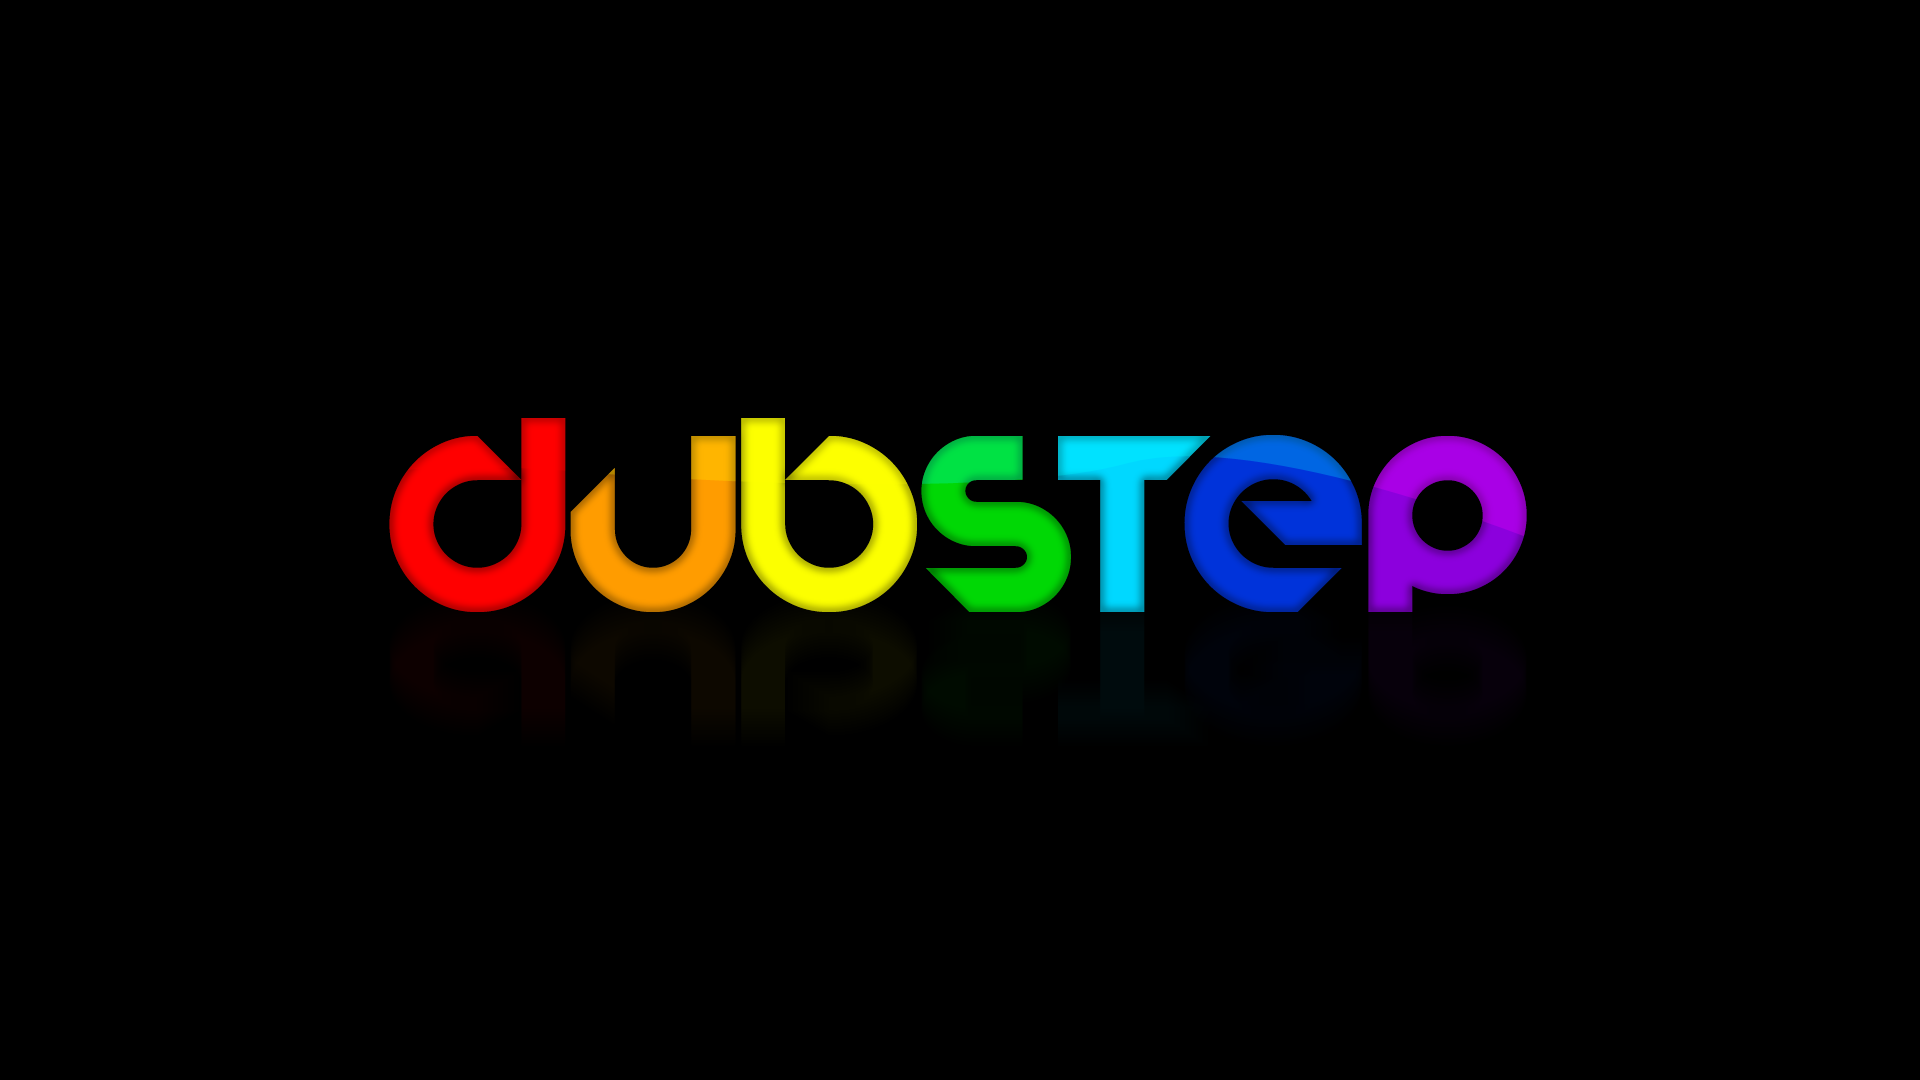 Dubstep High Quality Wallpapers Gallery, NZH.38906520